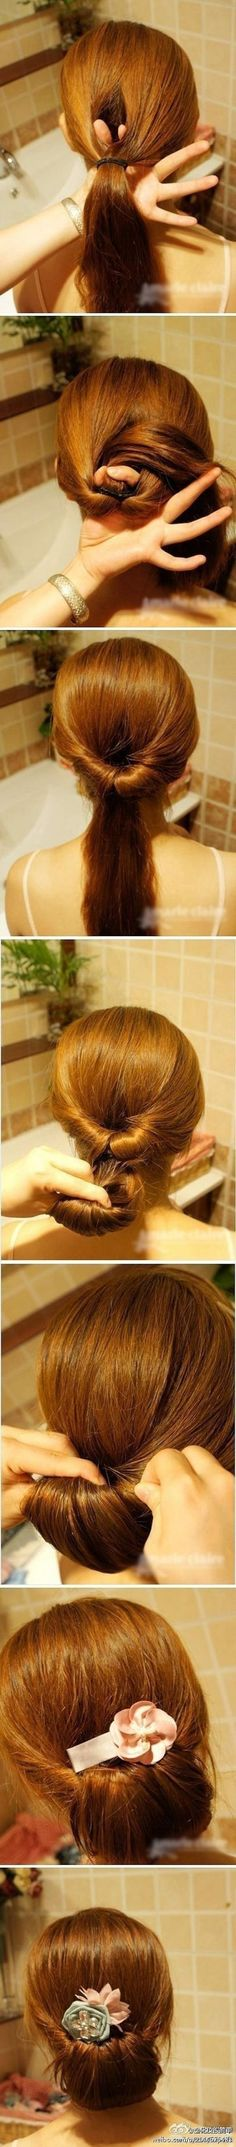 Even just keeping it in a pony tail would look nice.,